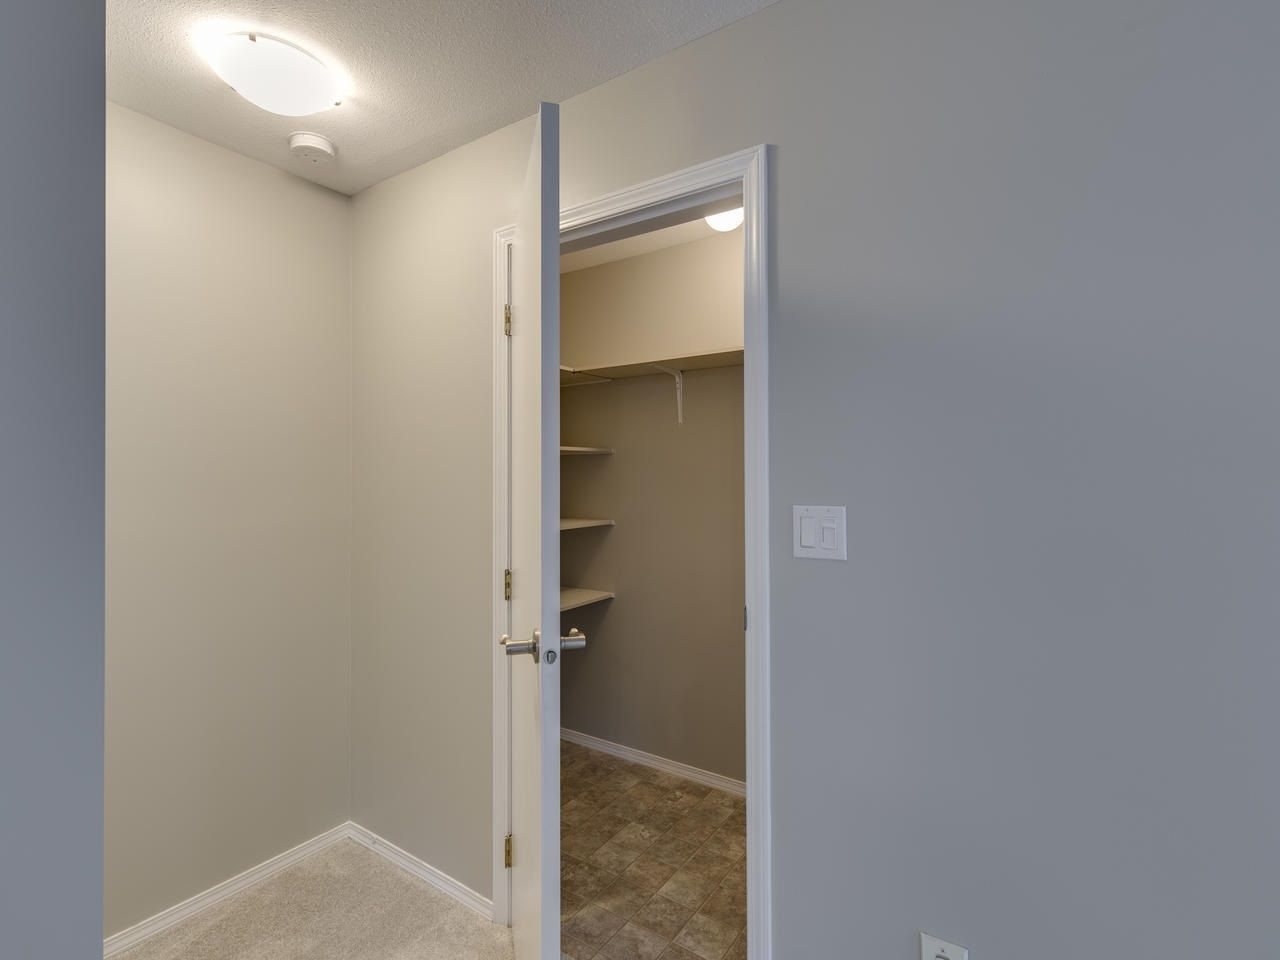 """Photo 19: Photos: 127 22555 116 Avenue in Maple Ridge: East Central Townhouse for sale in """"HILLSIDE"""" : MLS®# R2493046"""